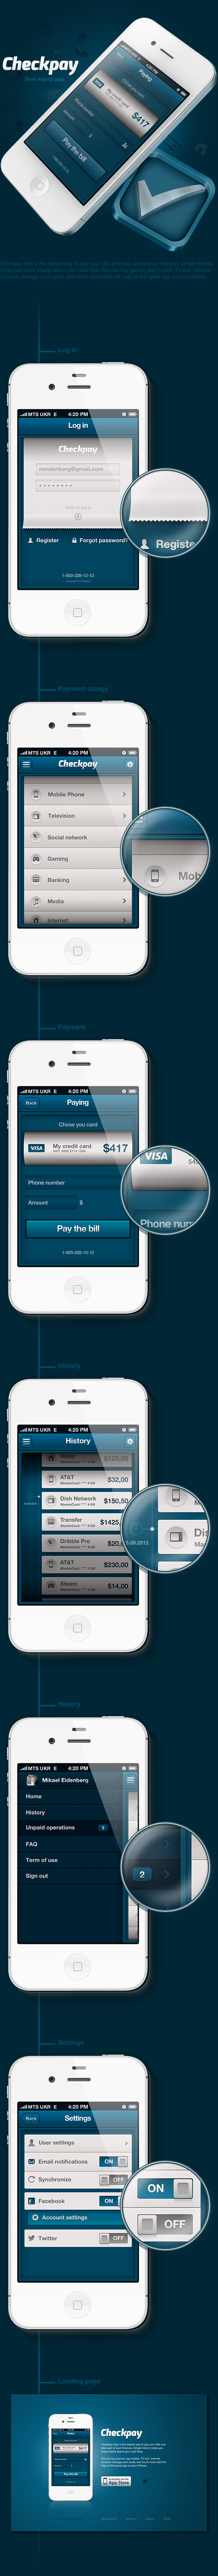 Checkpay App on